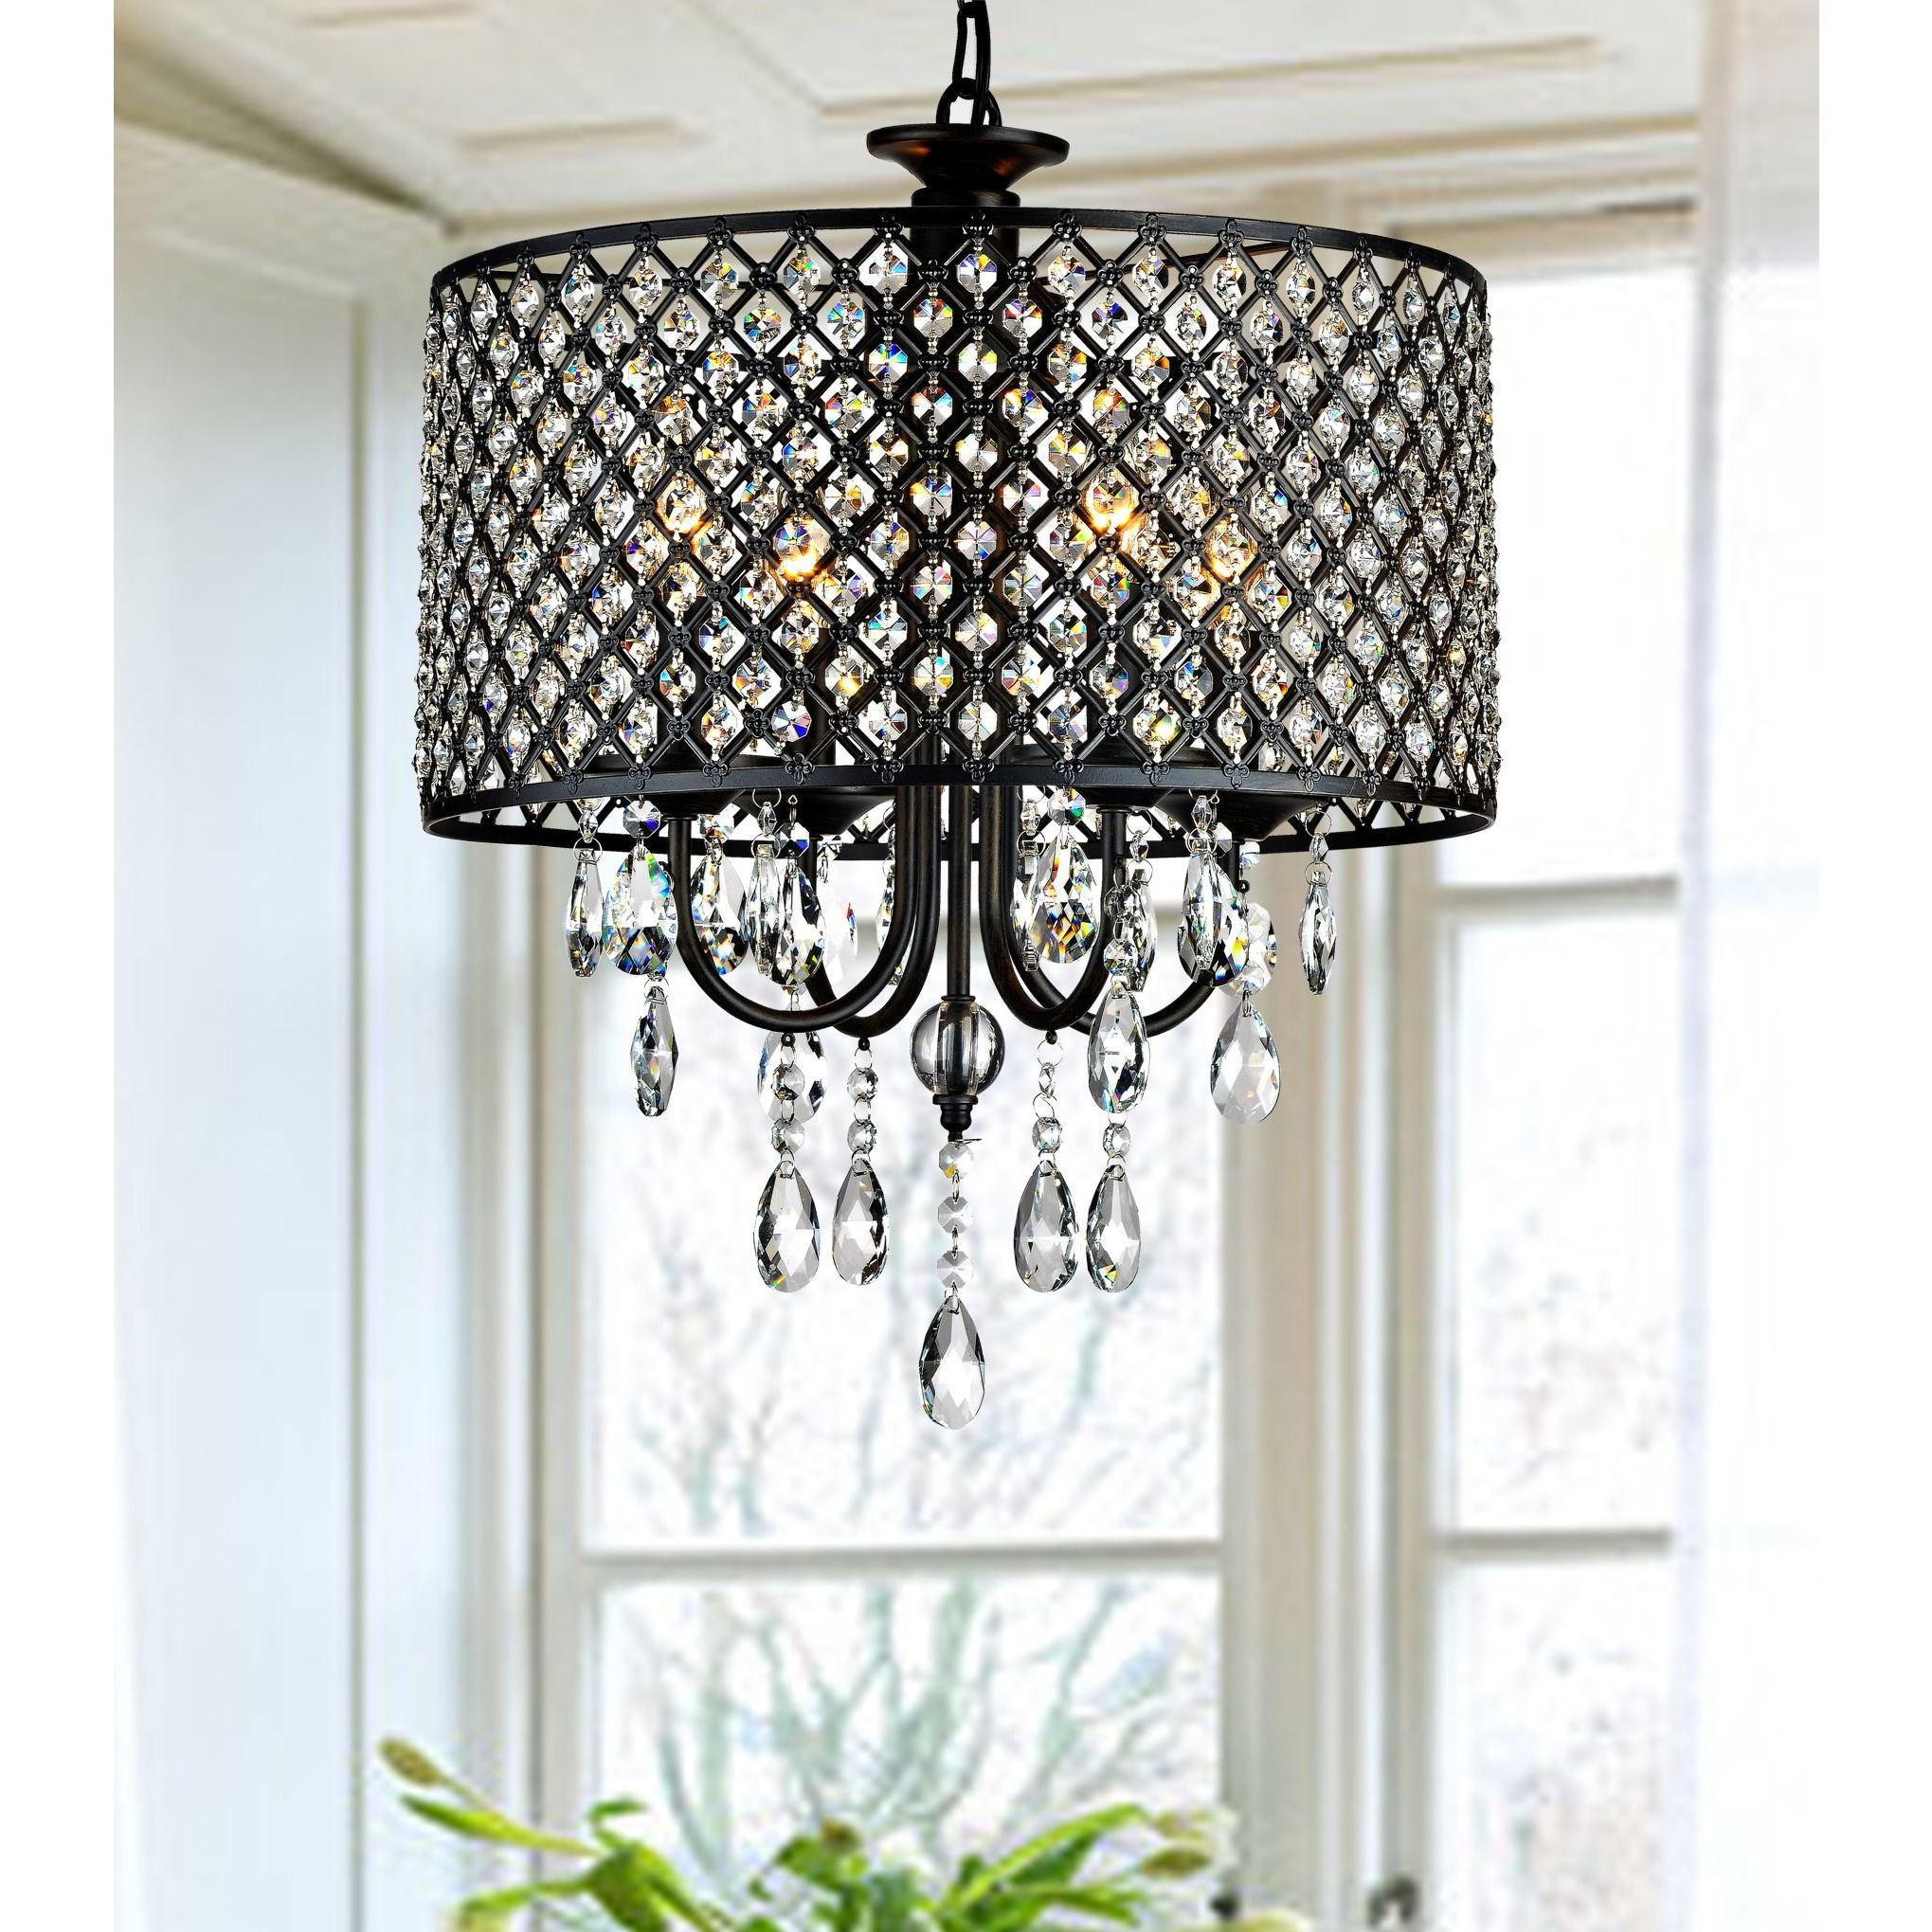 Trendy Porch & Den Cherrywood Merrie Lynn Antique Black 4 Light Pertaining To Aurore 4 Light Crystal Chandeliers (View 10 of 20)